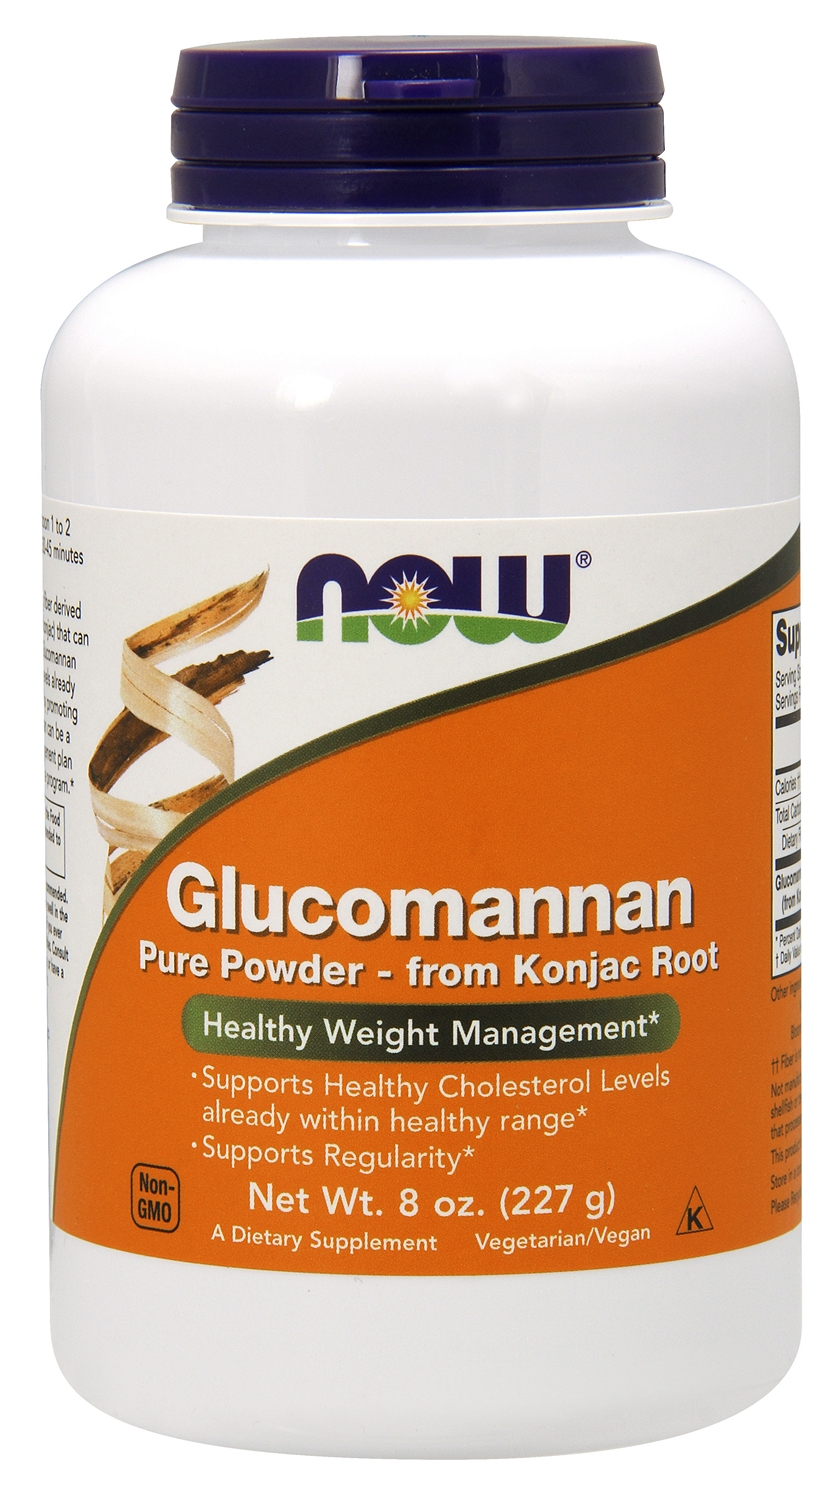 Glucomannan 100% Pure Powder from Konjac Root 8 oz (227 g) by NOW